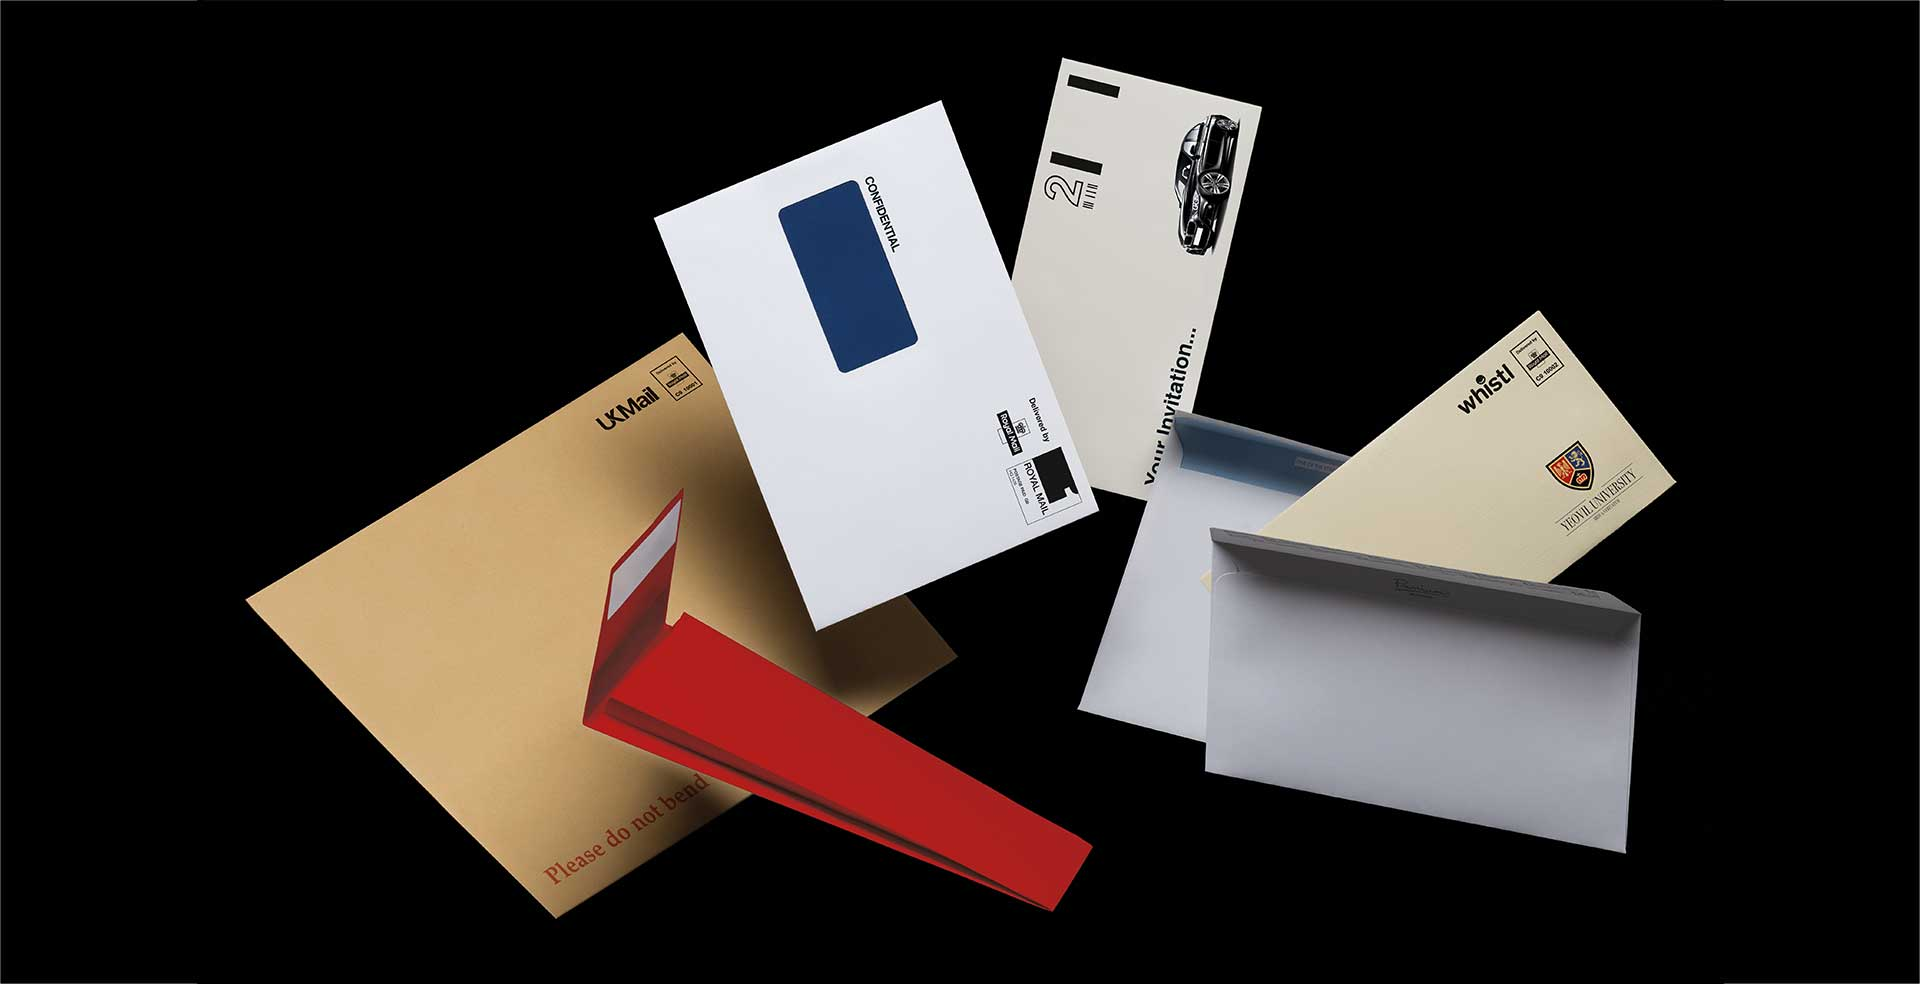 Blake bespoke envelopes